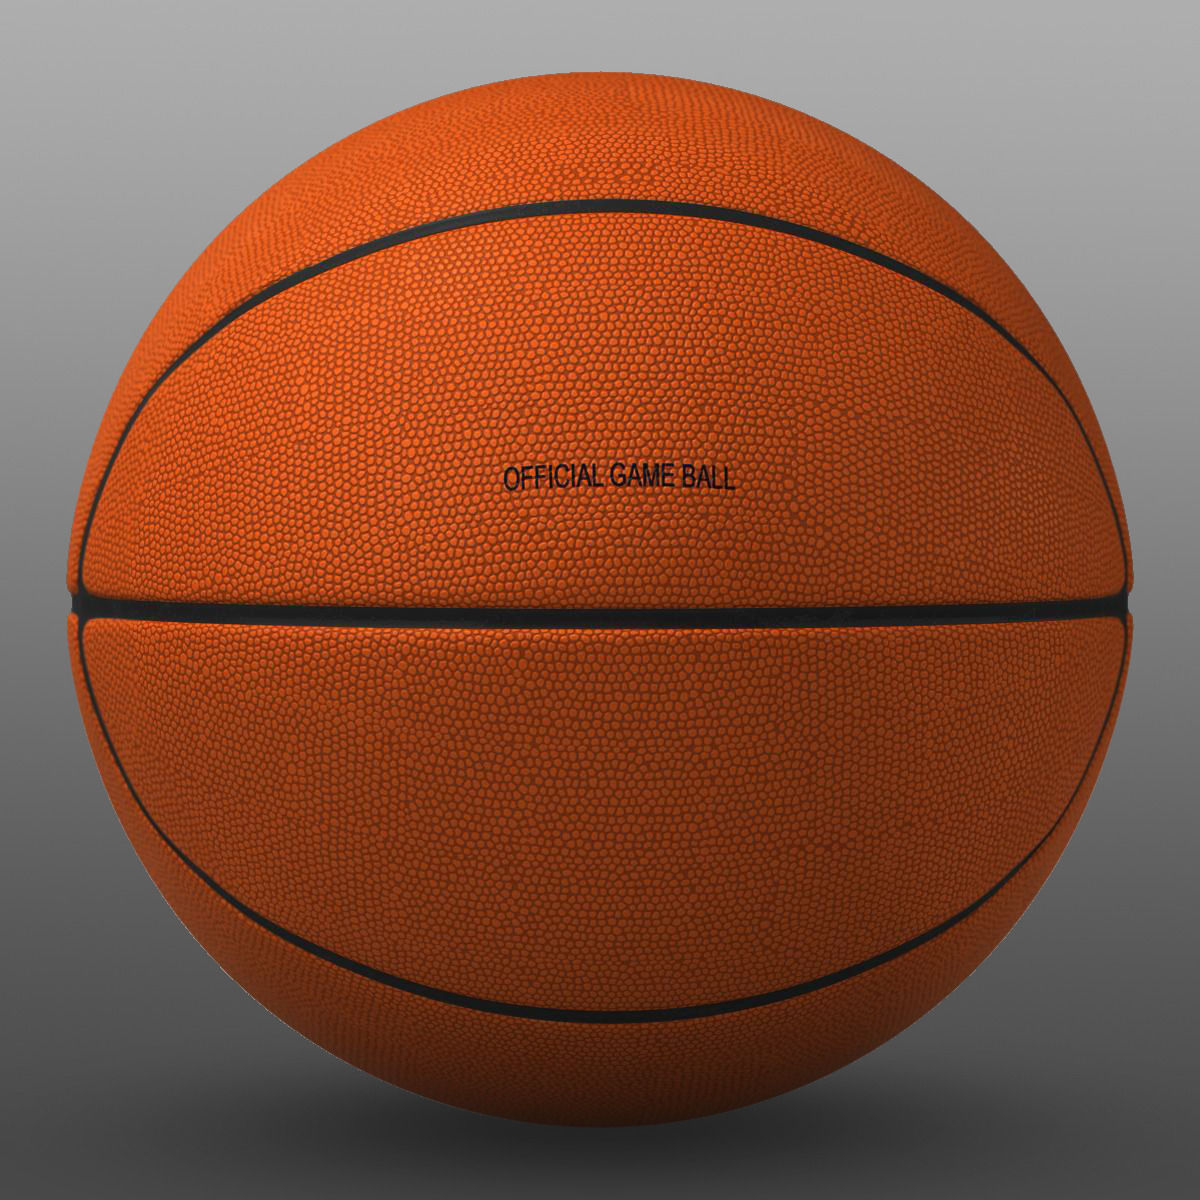 House Architectural Orange Basketball Ball 3d Model Game Ready Max Obj 3ds